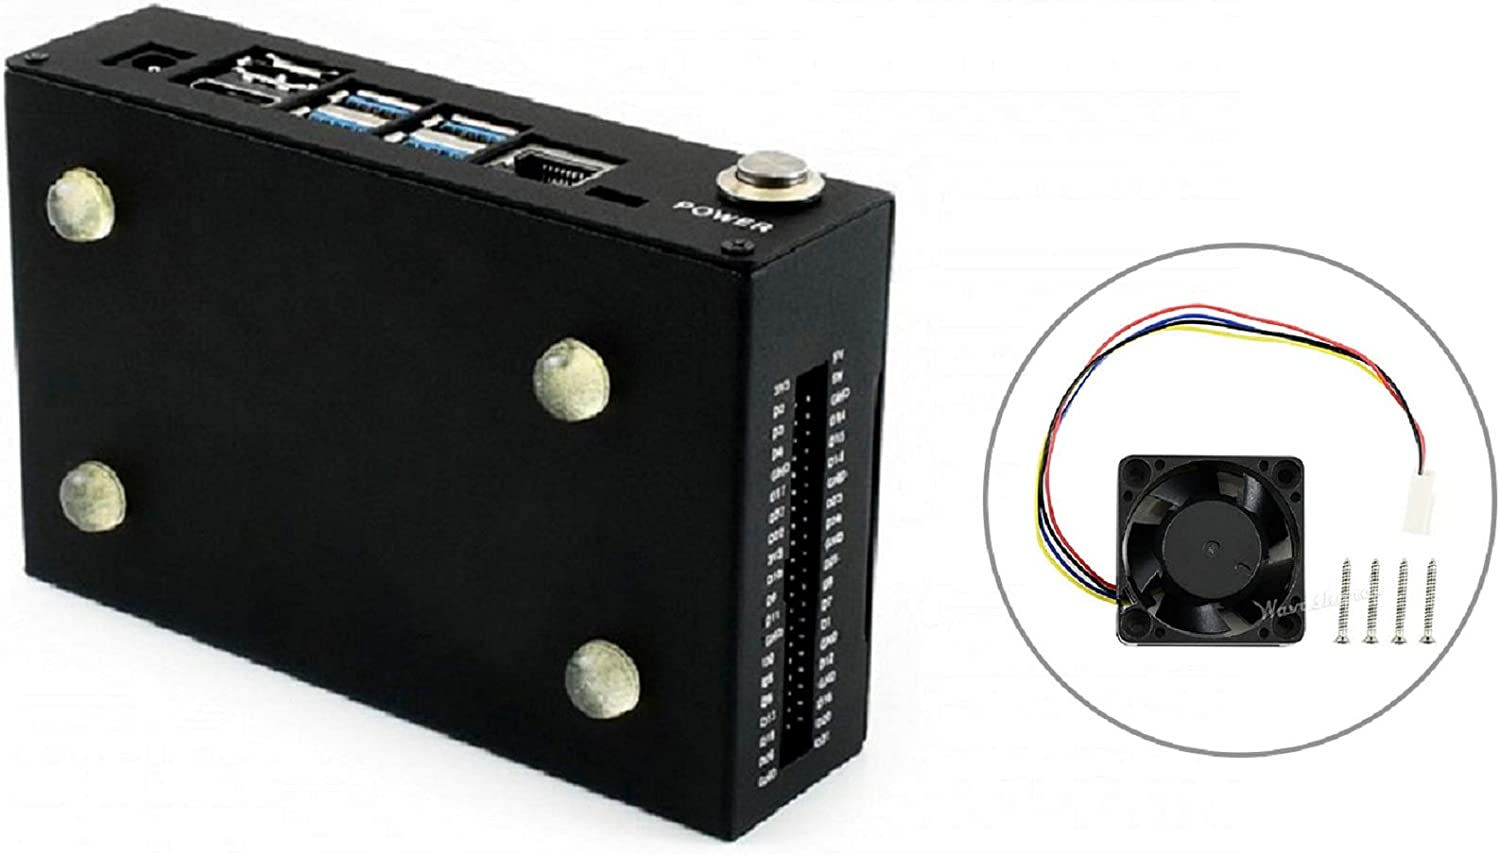 Metal Case with DC Brushless 5V PWM Fan for NVIDIA Jetson Nano Developer Kit,Cooling Fan and Metal Enclosure with Camera Holder Reset and Power Buttons Compatible with IMX219 Camera,Wireless-AC8265